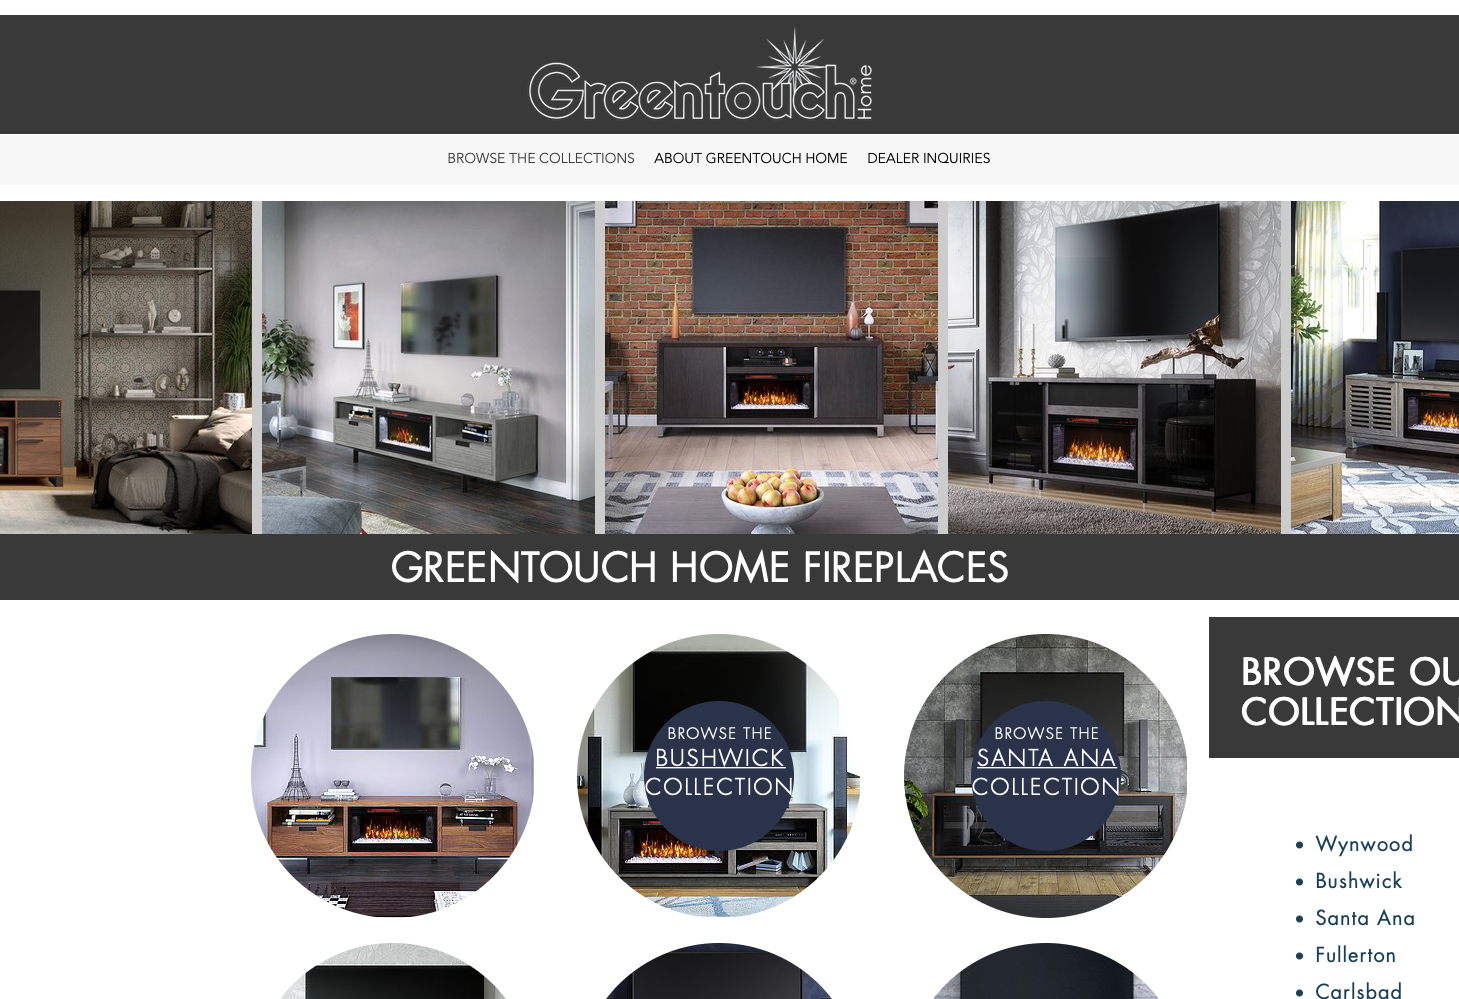 Greentouch Fireplaces